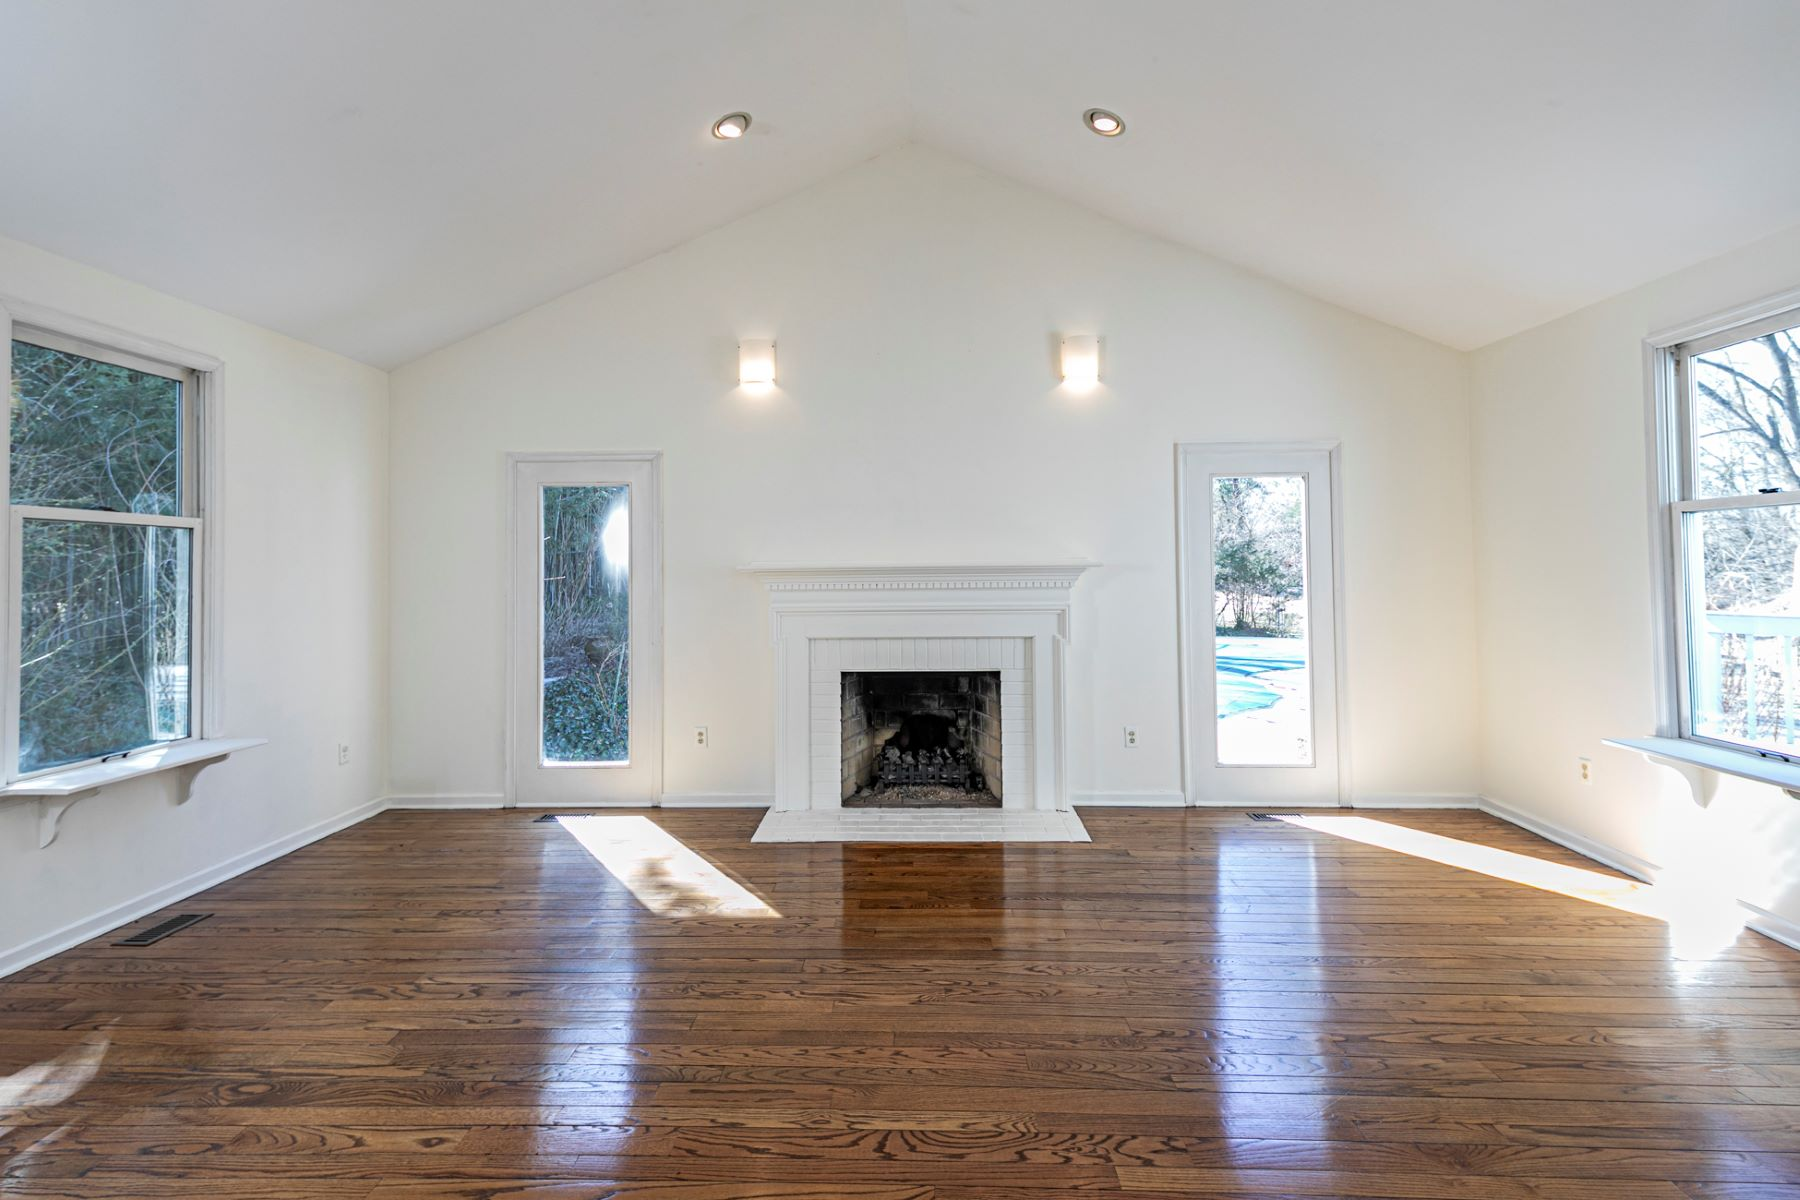 Additional photo for property listing at Versatility & Elegance in The Ridings 3 Coach Drive, Lawrenceville, New Jersey 08648 United States